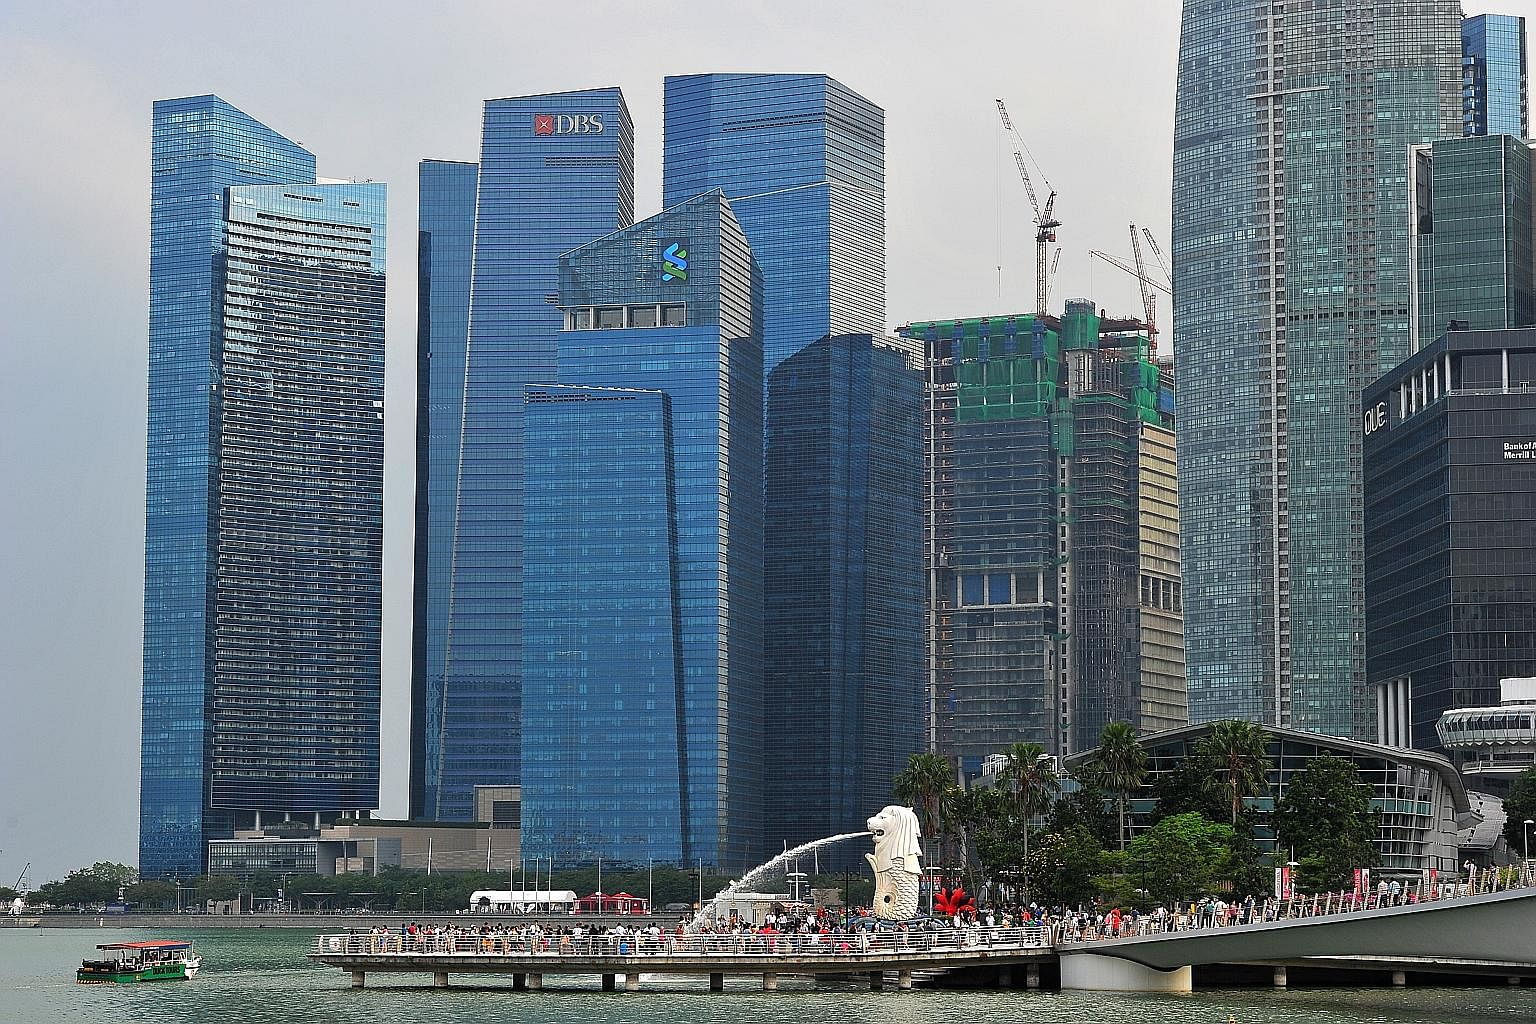 The global economic landscape is changing rapidly, warned Mr Heng, and major economies like China and India are restructuring. Singapore has but a narrow window of opportunity to transform itself.